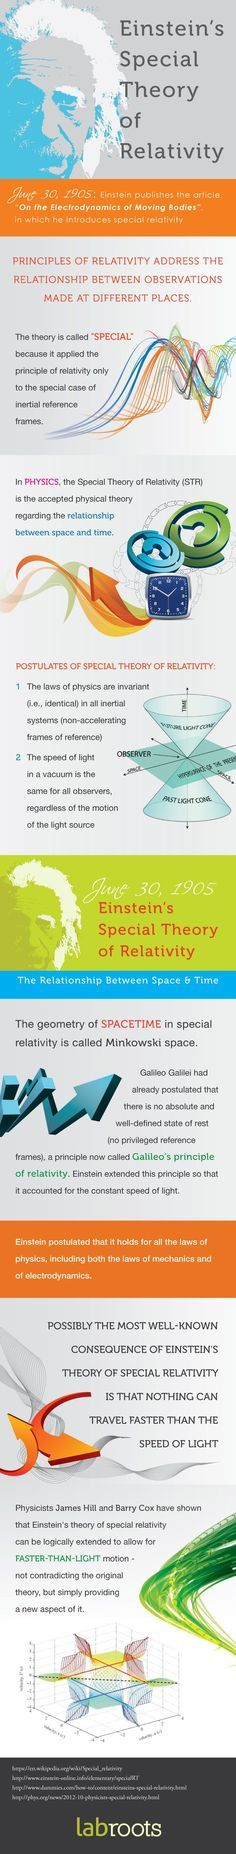 Einstein's Special Theory of Relativity Explained LabRoots Infographics For the Scientific and Medical Community Science Facts, Science News, Science Education, Science And Technology, Theoretical Physics, Physics And Mathematics, Quantum Physics, Physics Theories, Einstein